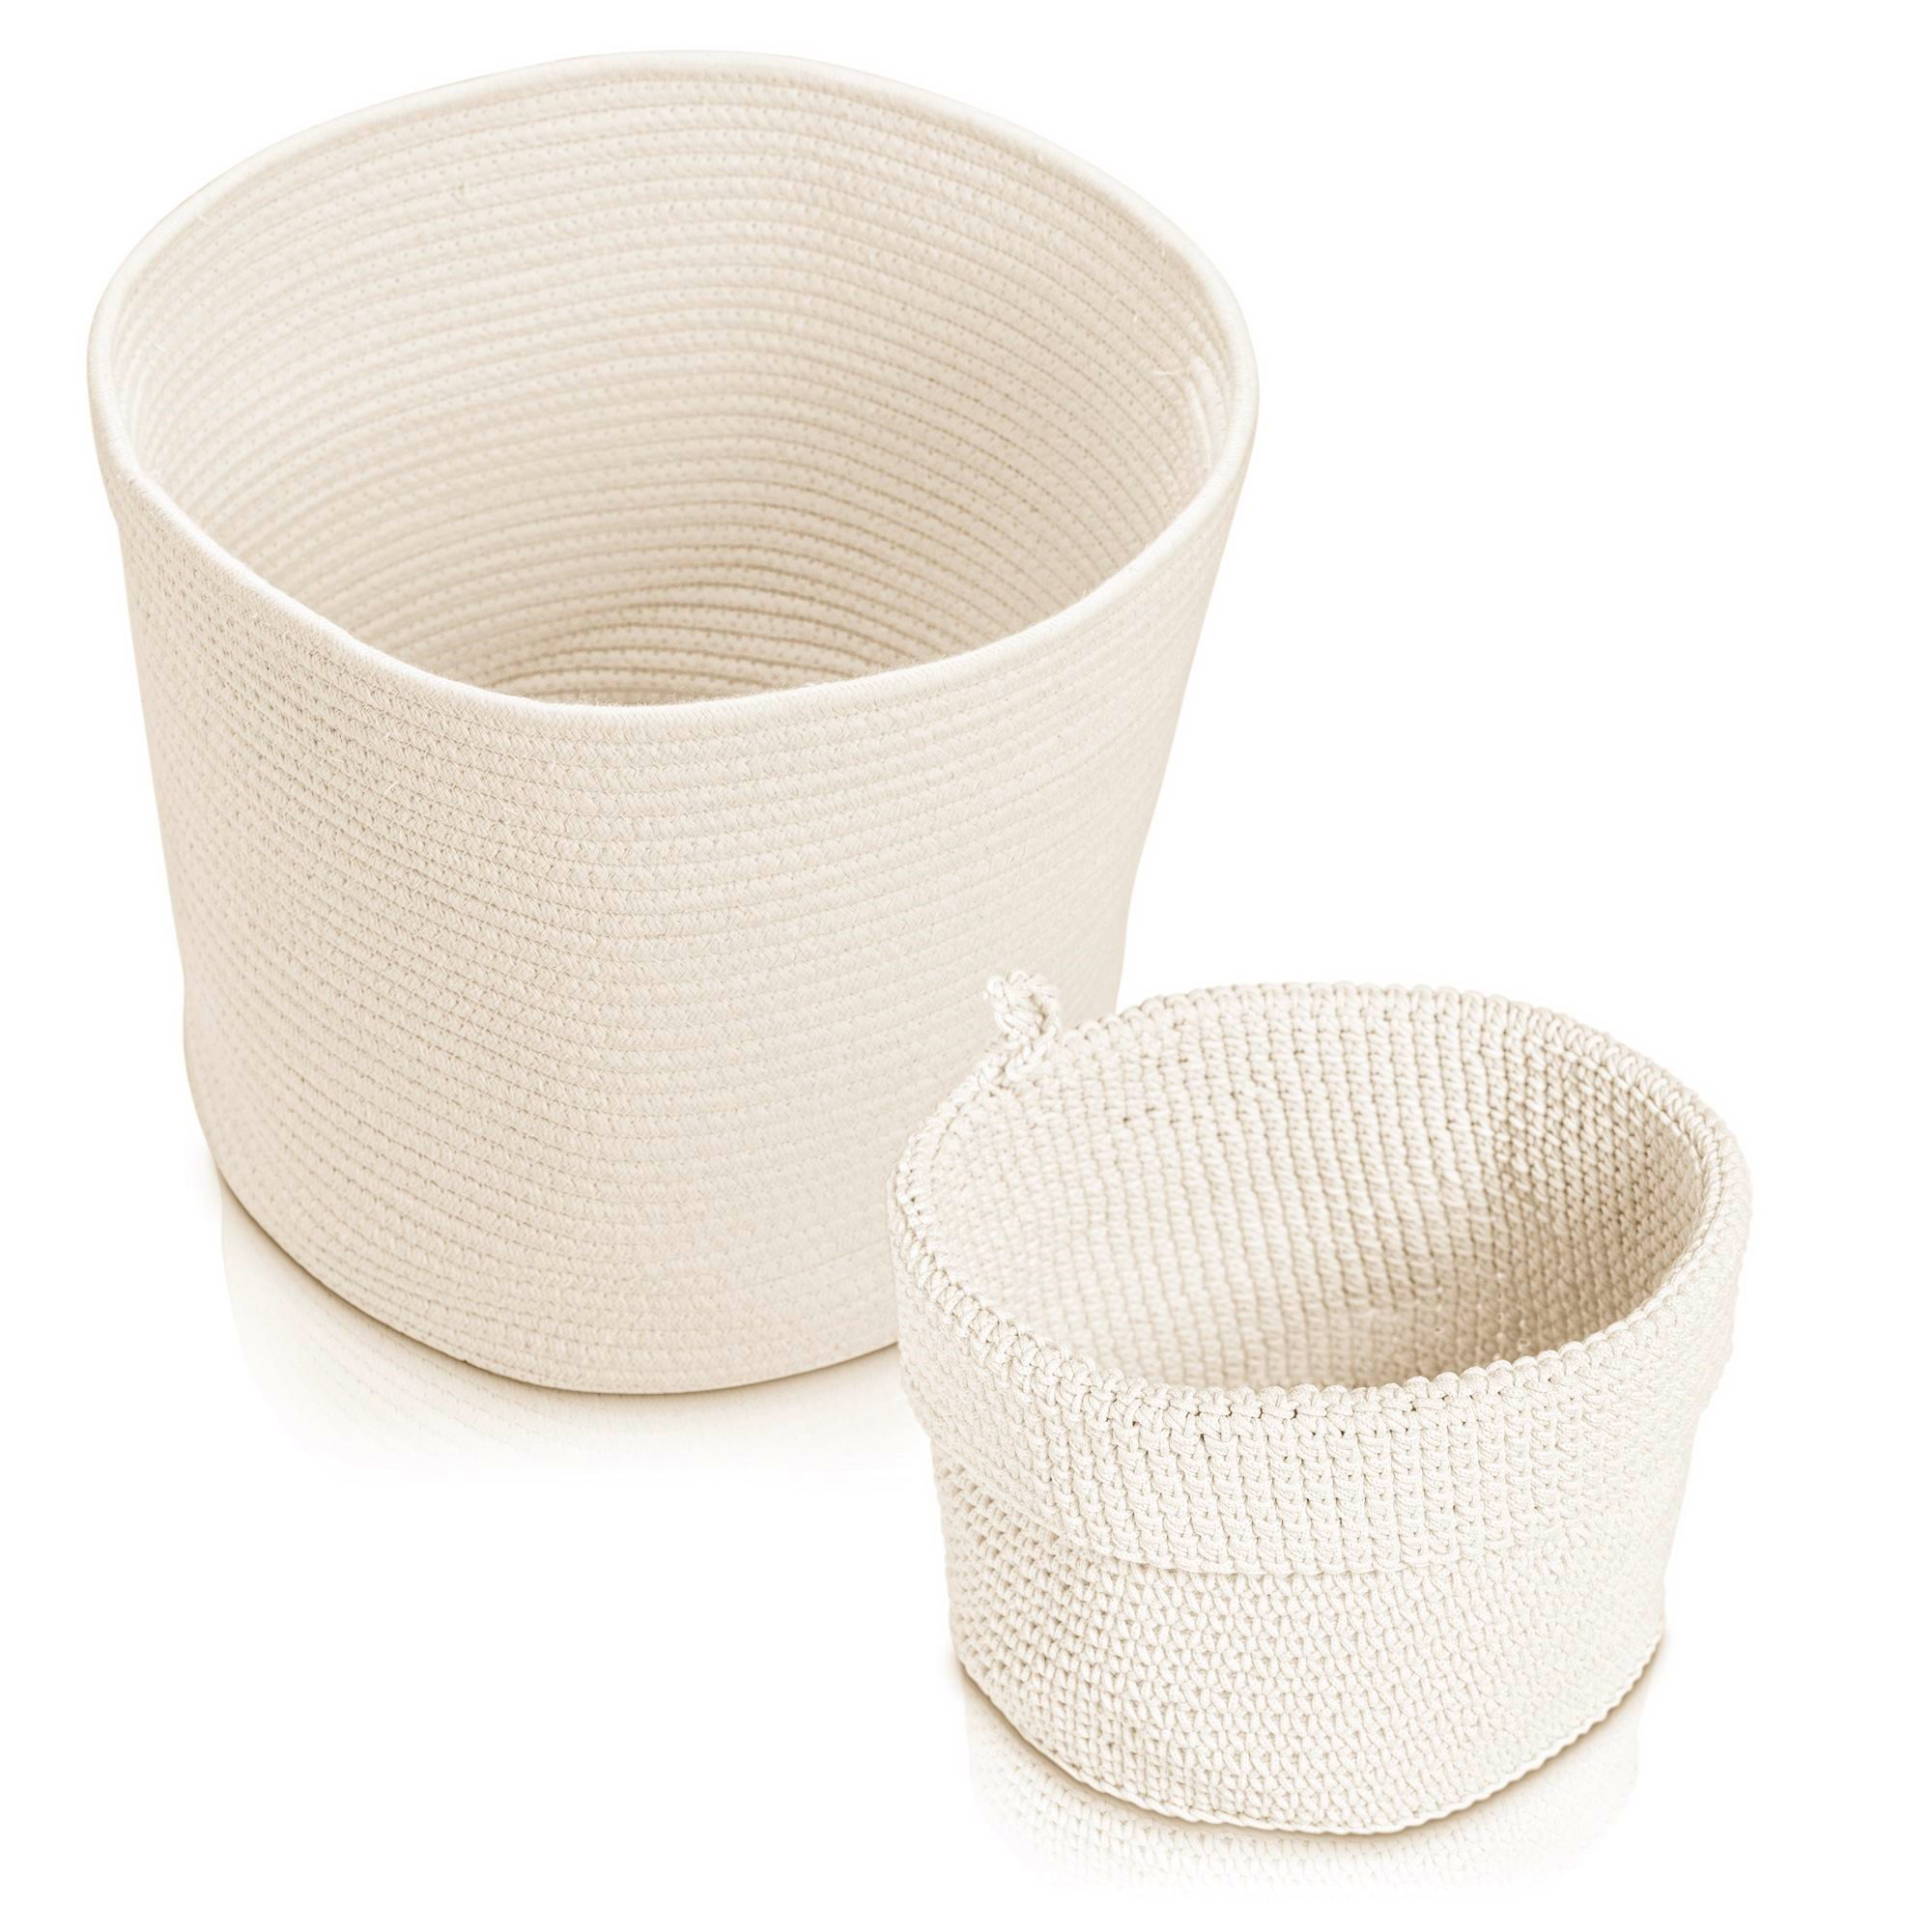 Rope Basket Organizer Combo Set - Eco-Friendly, Natural Color and Tightly Woven - Medium Size 15 x 13 inch Cotton Rope Basket, with Bonus 8 x 6 inch Nylon Rope Basket - Mold Resistant and Decorative